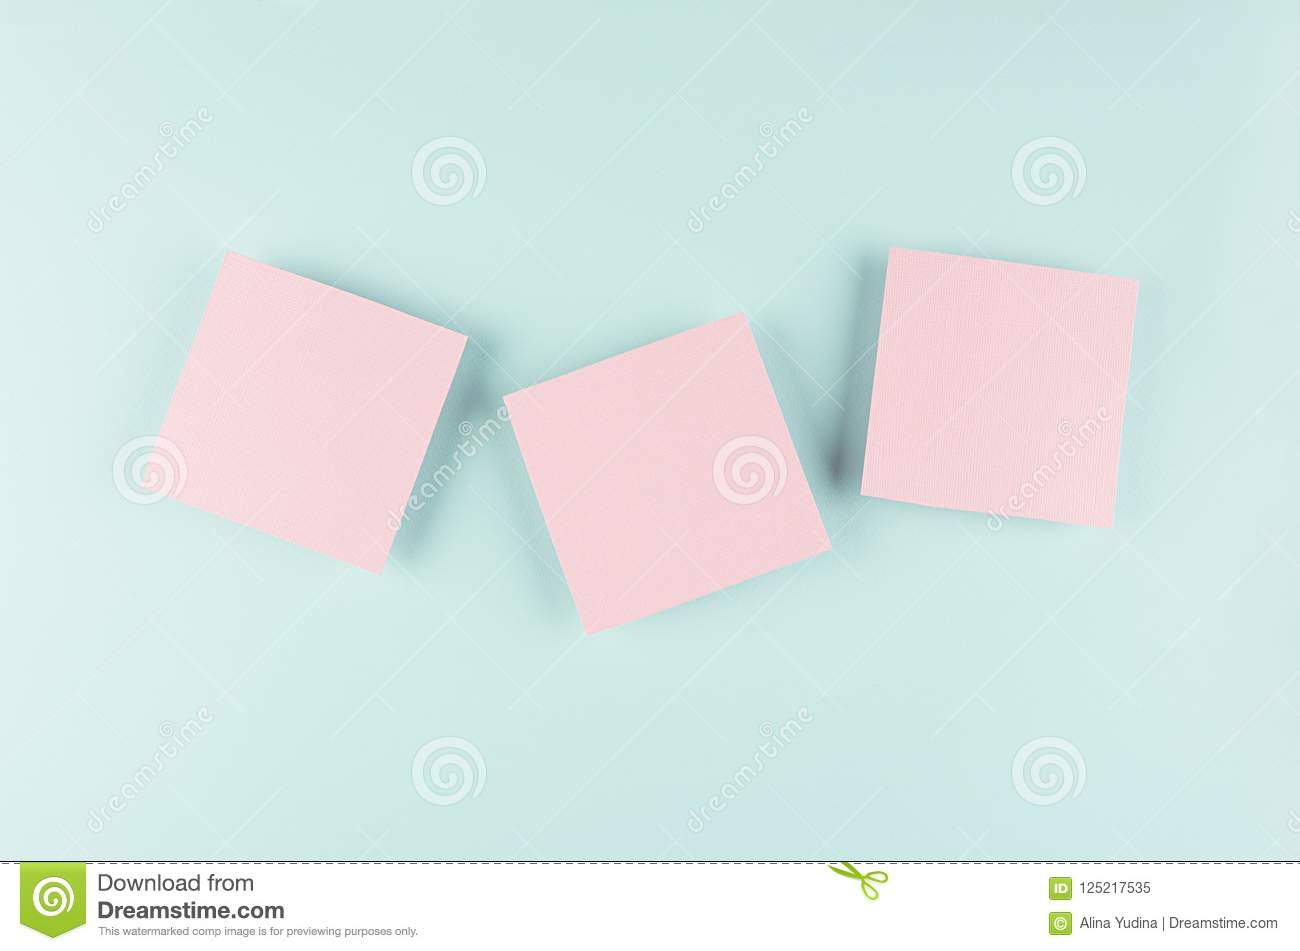 Halloween cartoon mock up for advertising, design, cover - pink paper squares on pastel mint background.